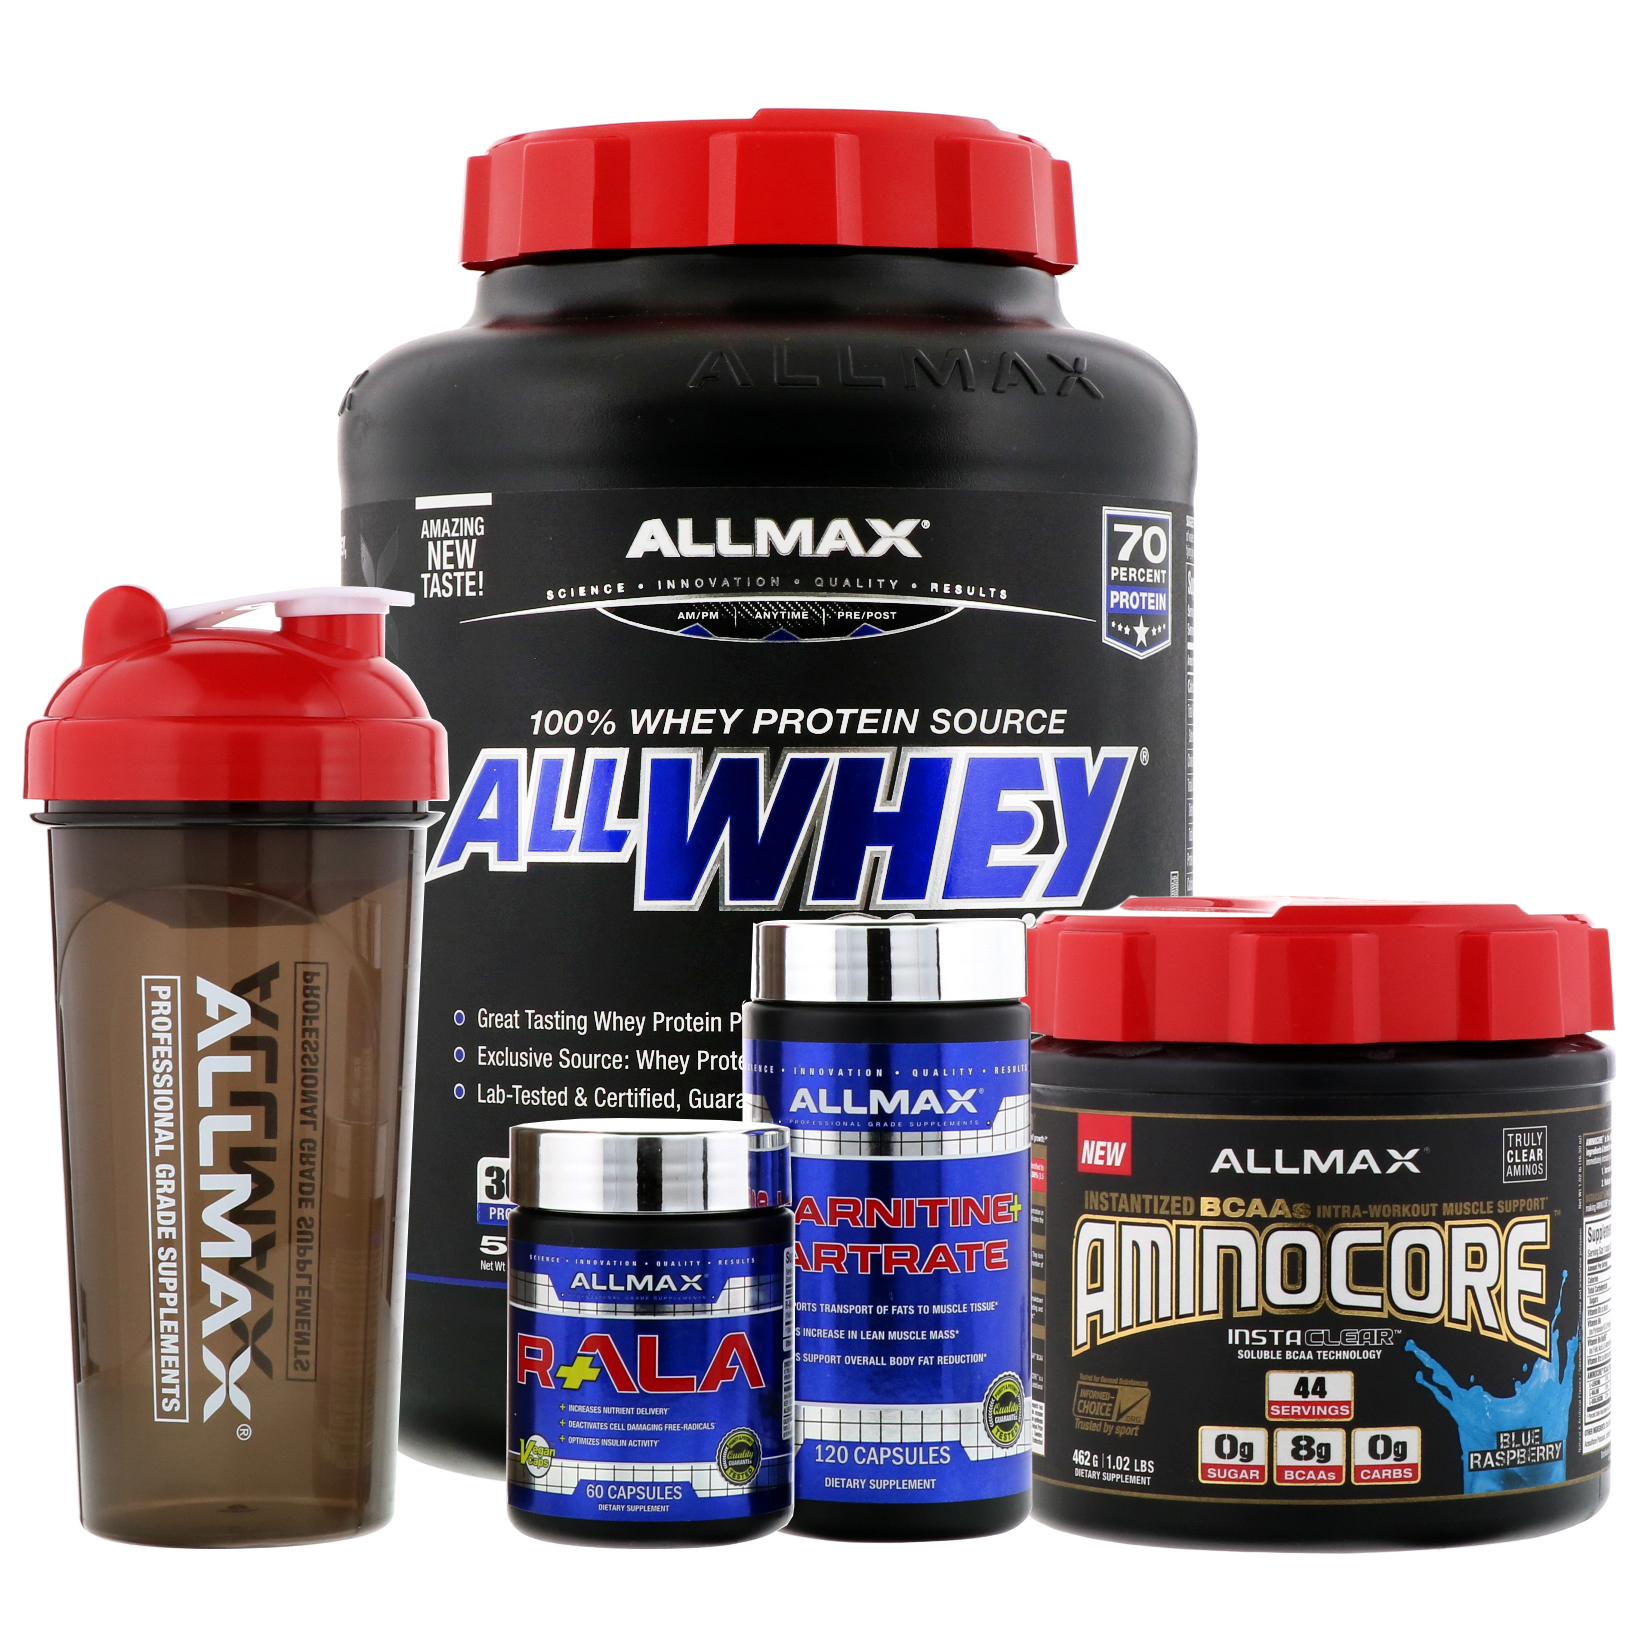 Allmax Complete Workout